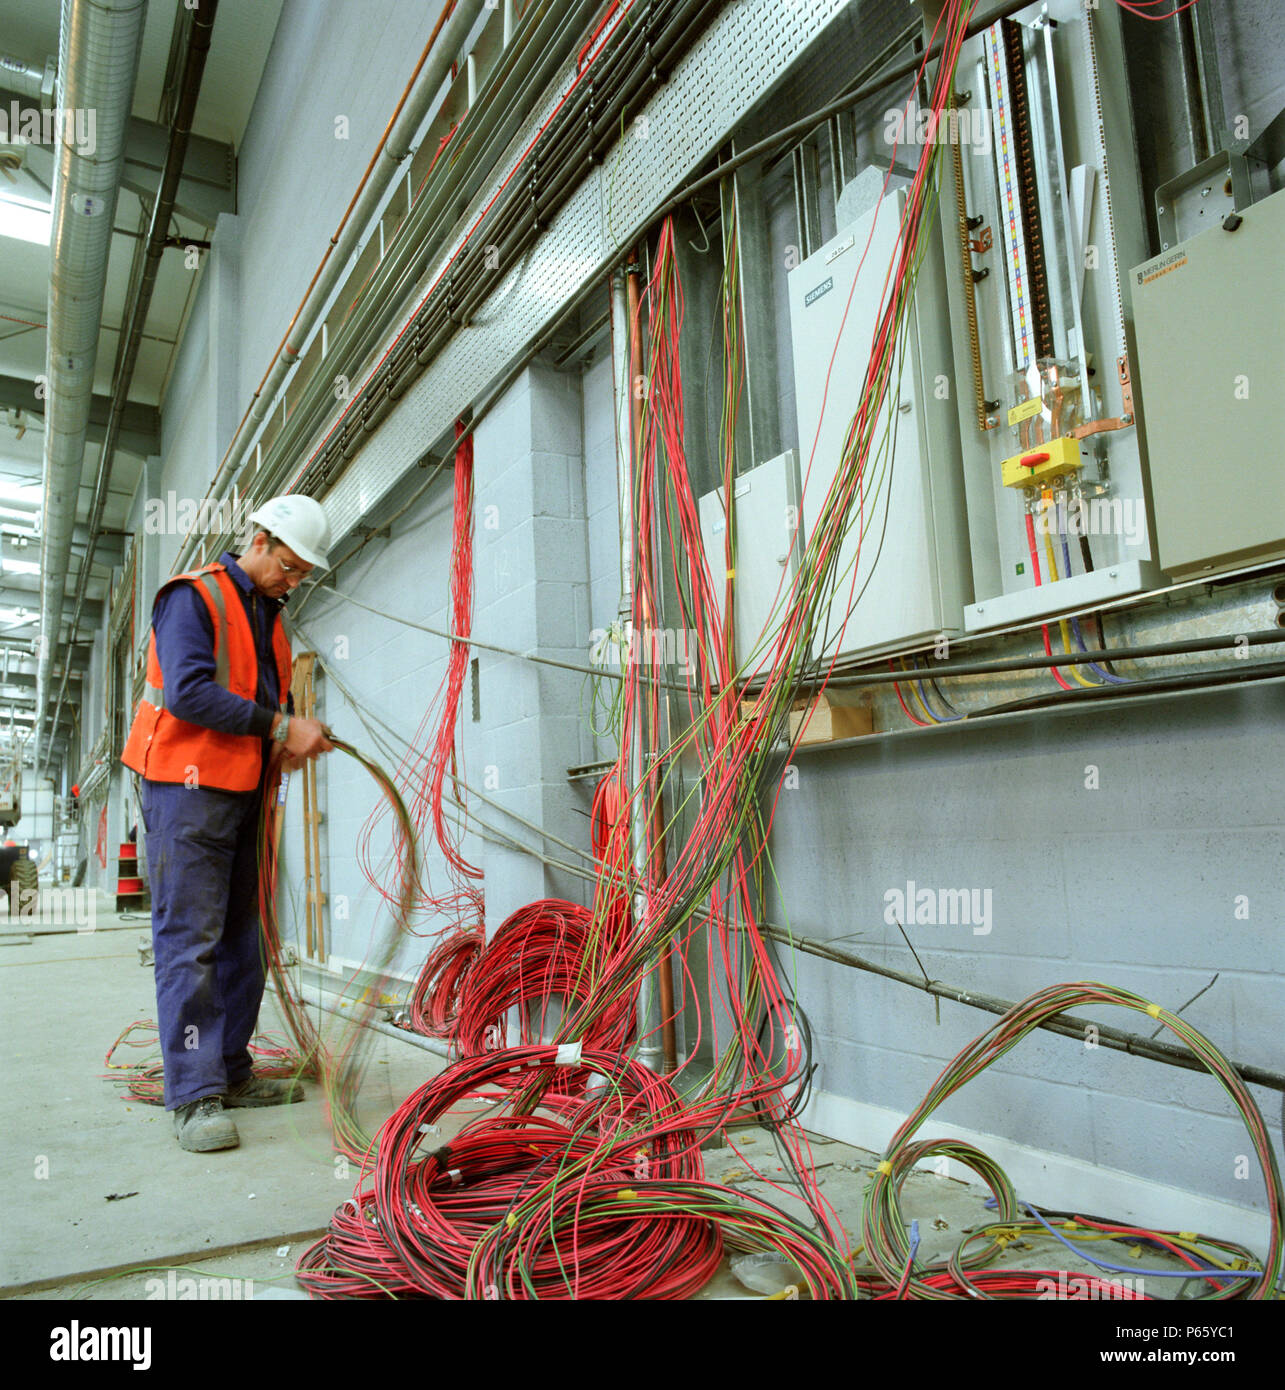 Electrical Skills Stock Photos & Electrical Skills Stock Images - Alamy